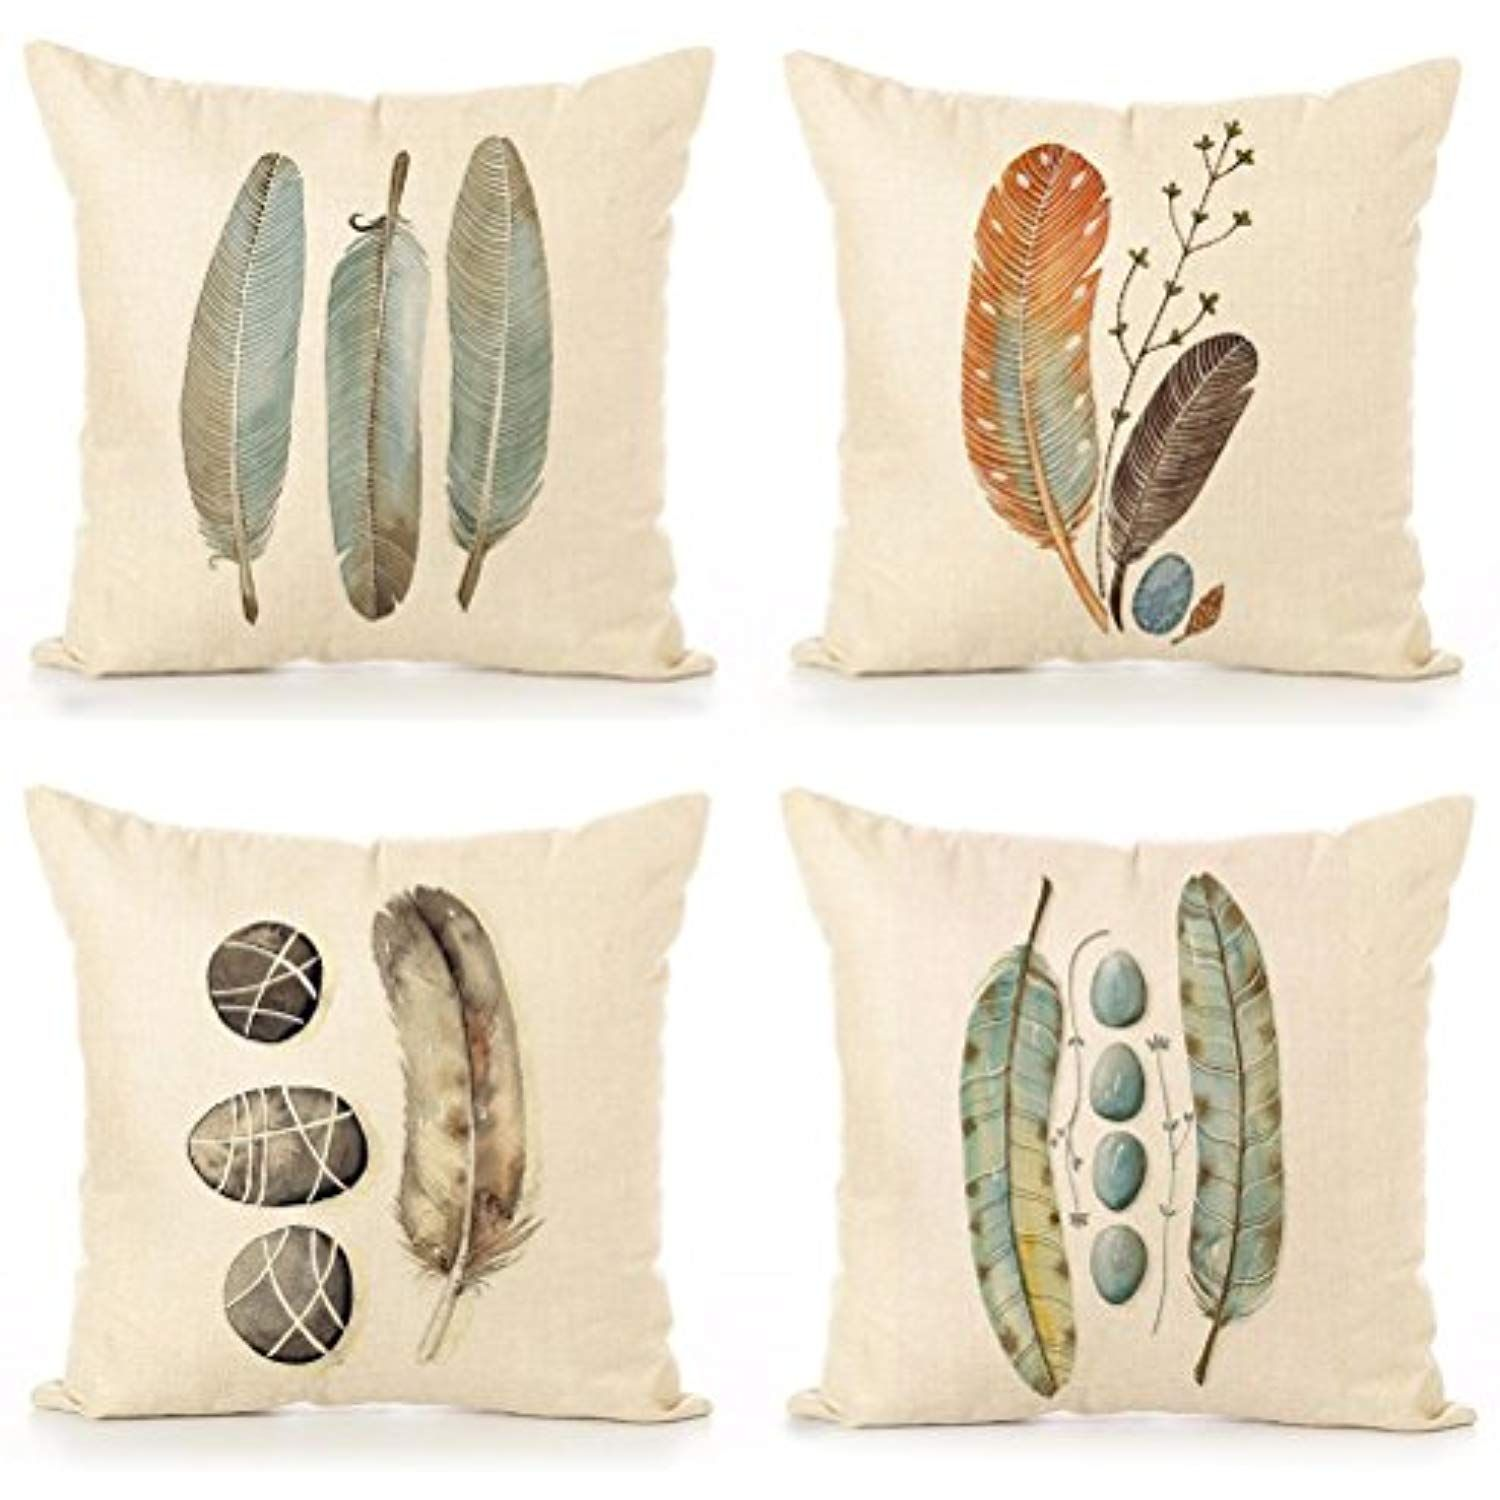 Cotton Linen Throw Pillow Case U Love Feathers Print Square Cushion Cover 18 X 18 Inch Pillow 4 Pack Y Throw Pillow Cases Linen Throw Pillow Throw Pillows